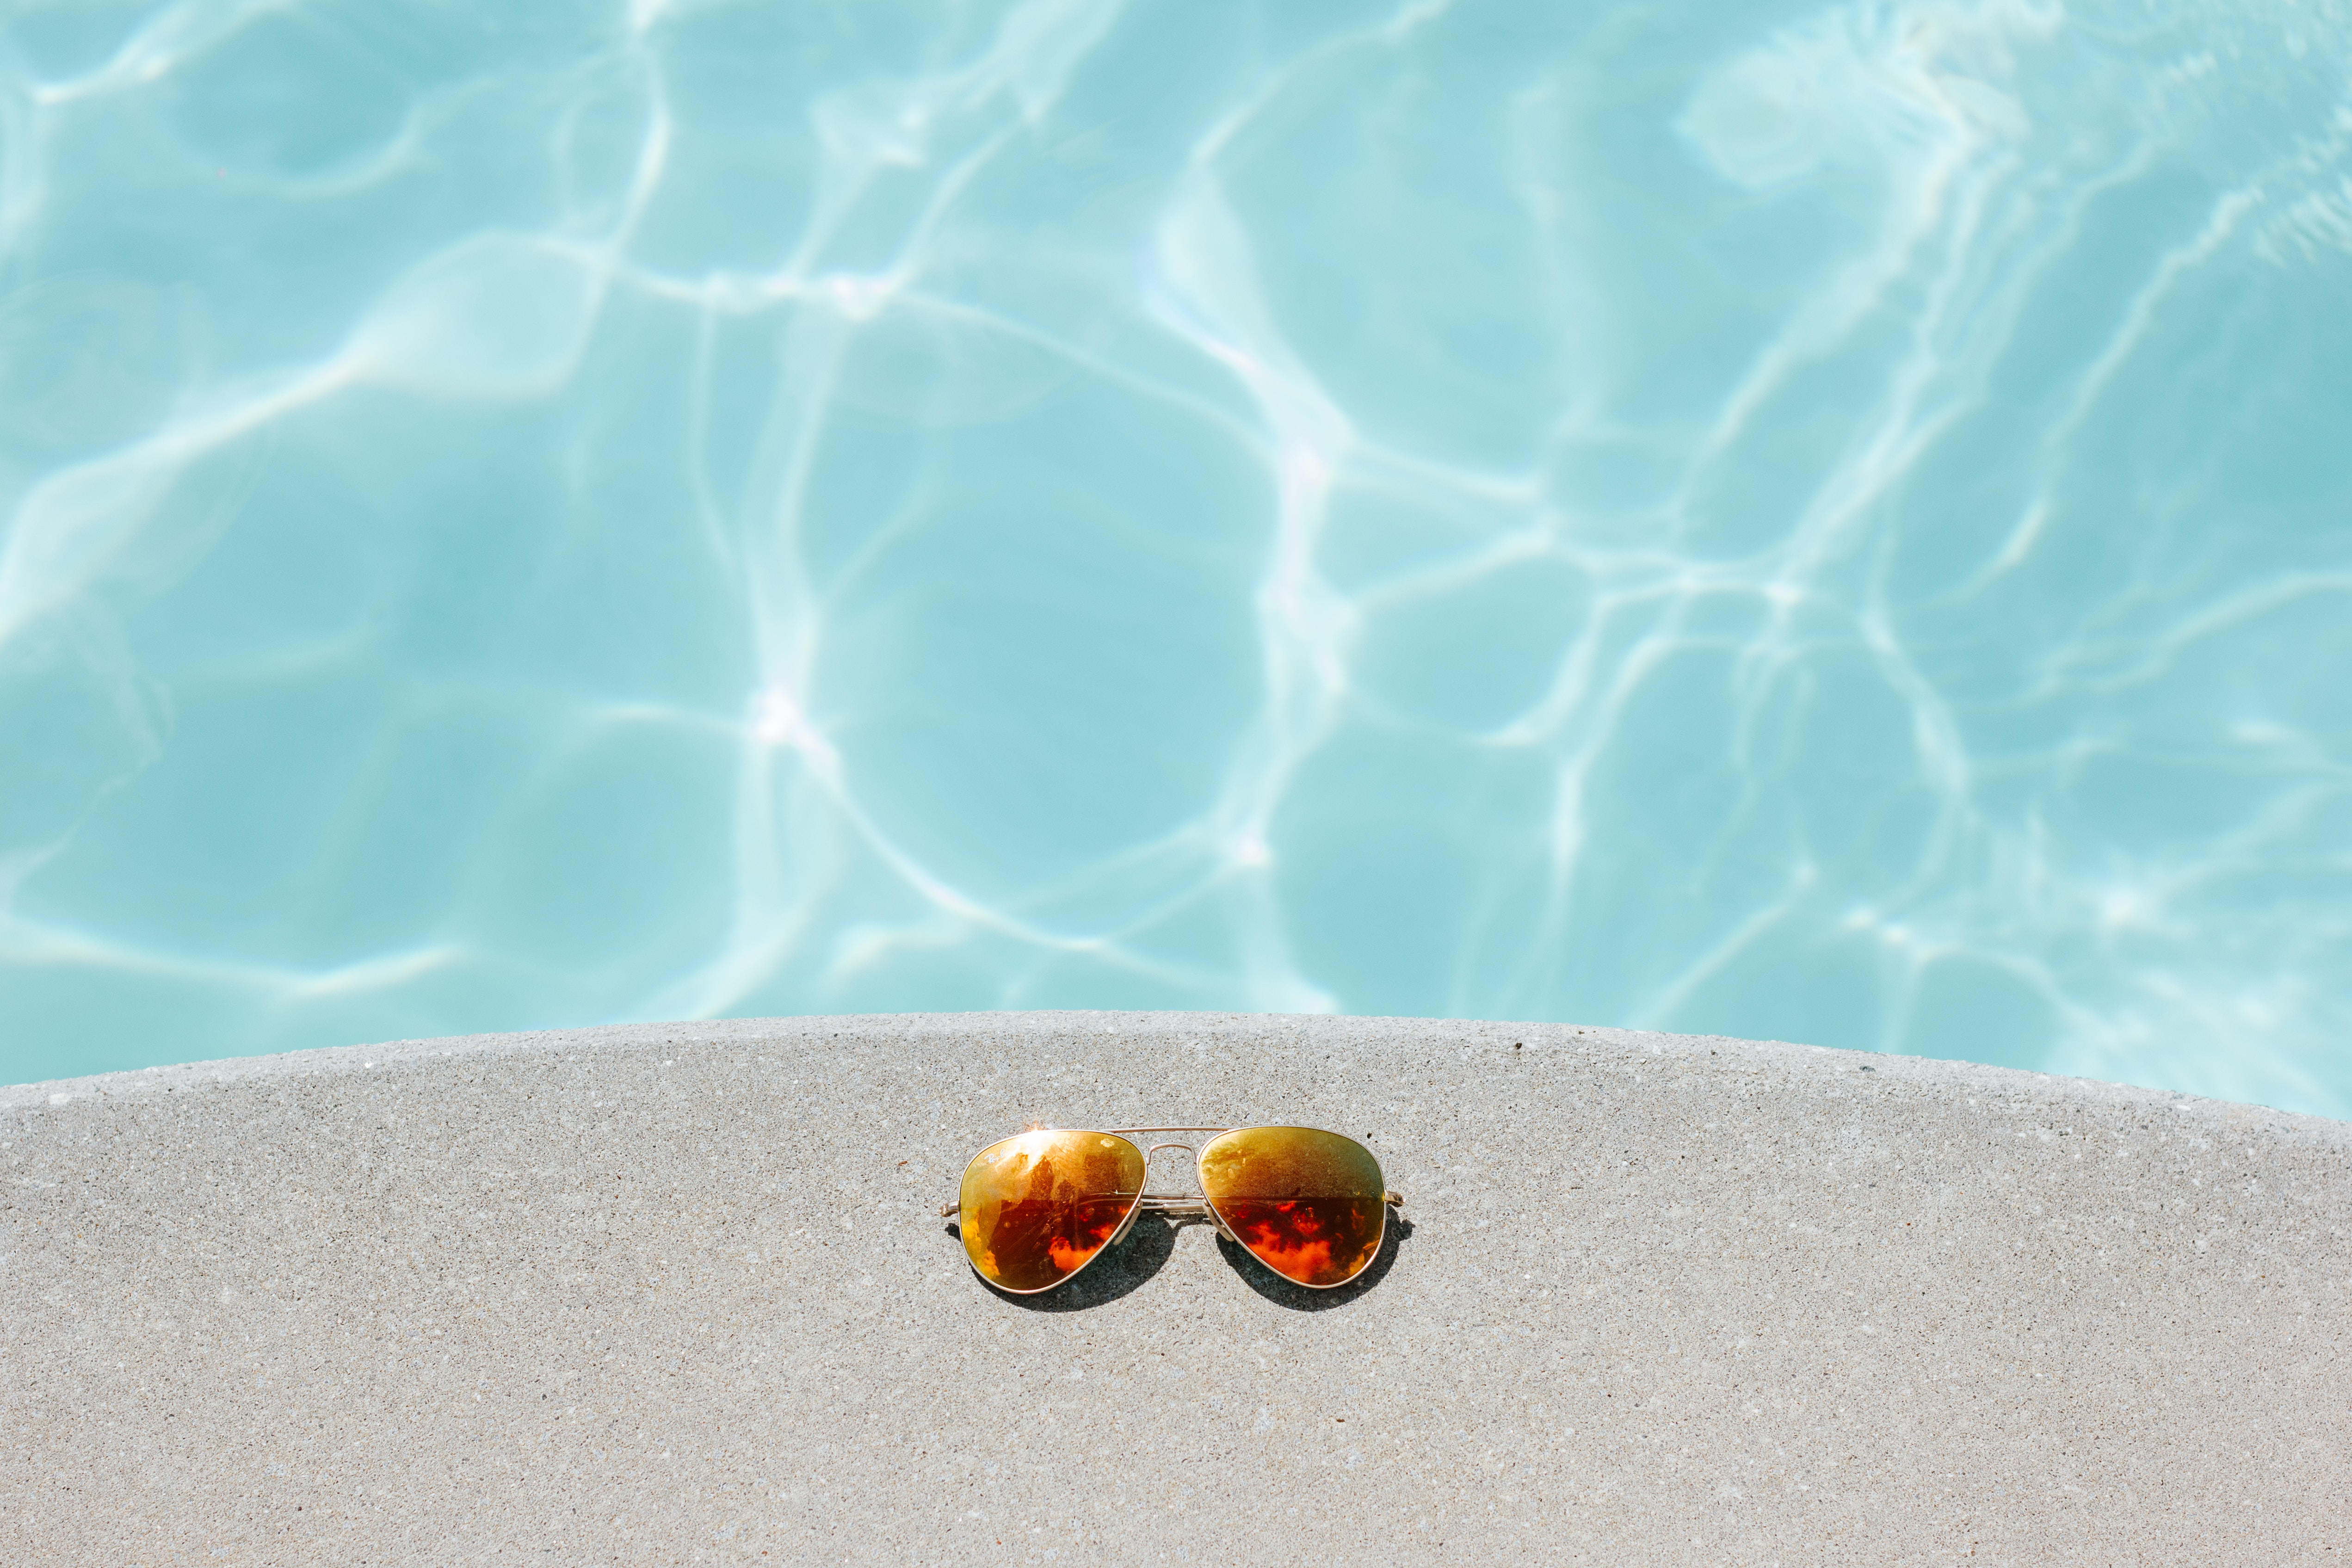 Image of sunglasses sitting on the ledge by the pool